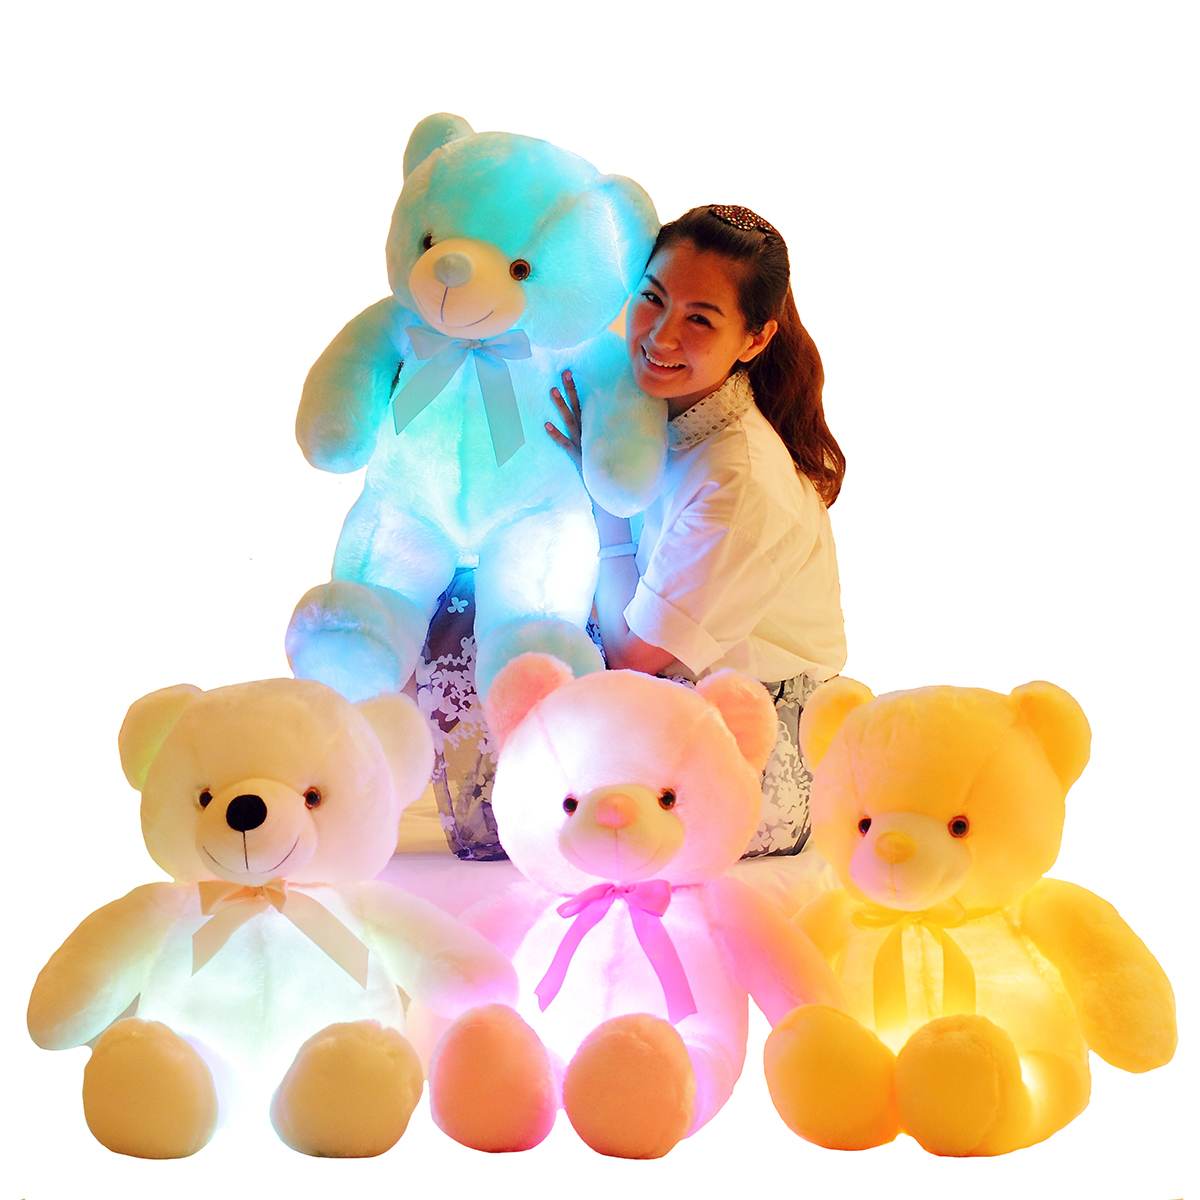 Luminous 25/30/50cm Creative Light Up LED Colorful Glowing Teddy Bear Stuffed Animal Plush Toy Christmas Gift for Kid|Plush Light - Up toys|   - AliExpress